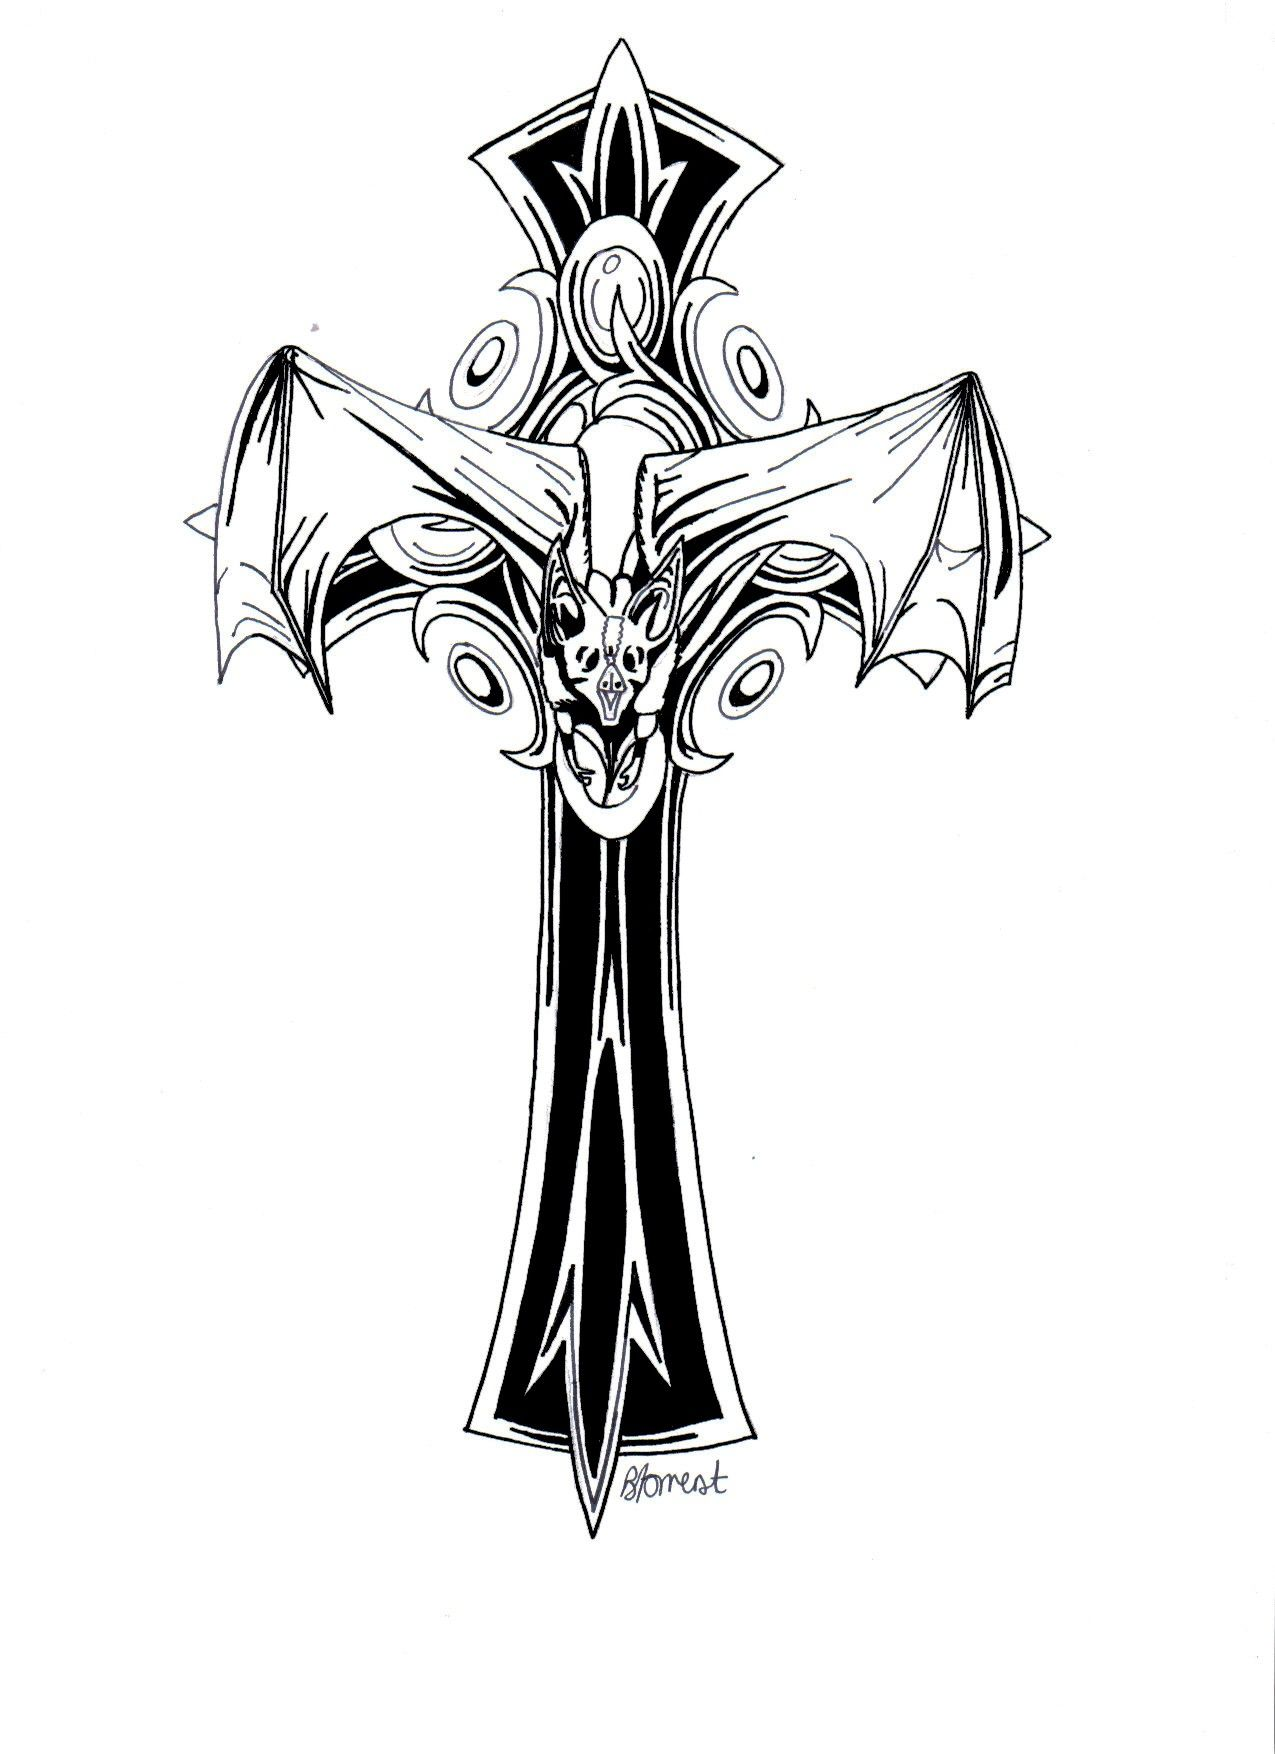 Gothic Cross By Bevf2003 On Deviantart Darquniss Ideas And Designs